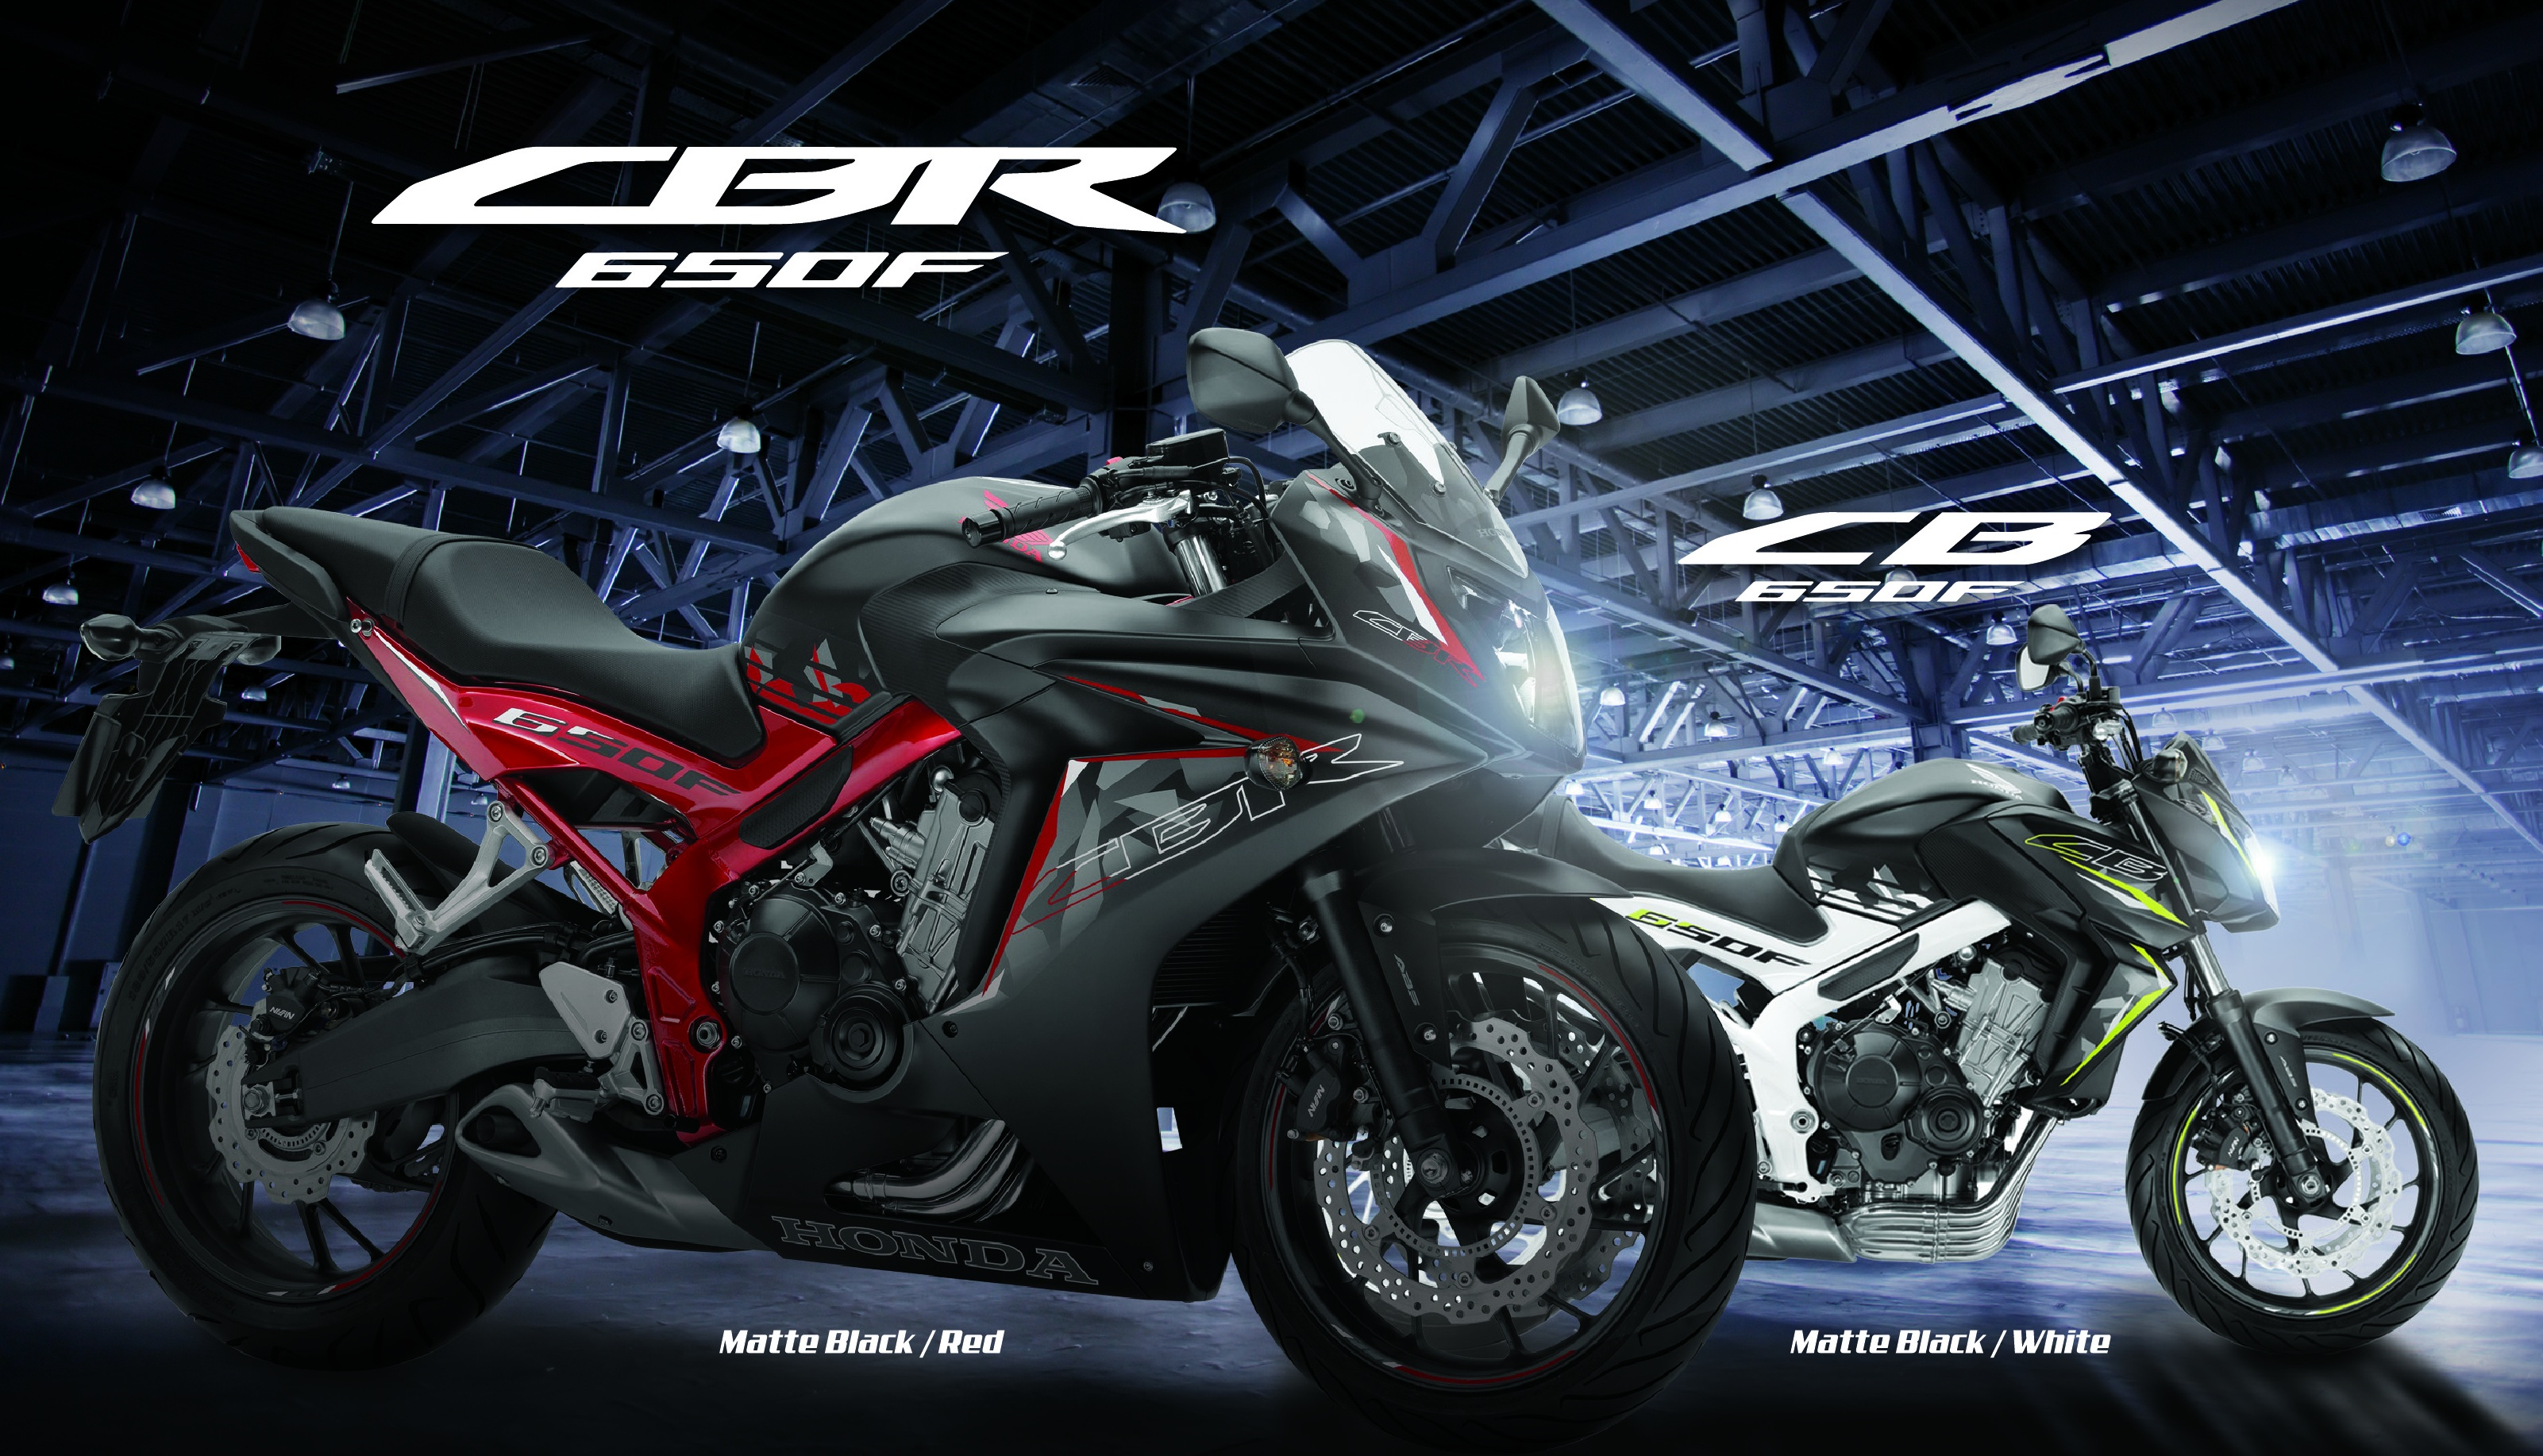 2017 sees honda cb650f naked sports and cbr650f sportsbike in new colour schemes from rm44 730. Black Bedroom Furniture Sets. Home Design Ideas